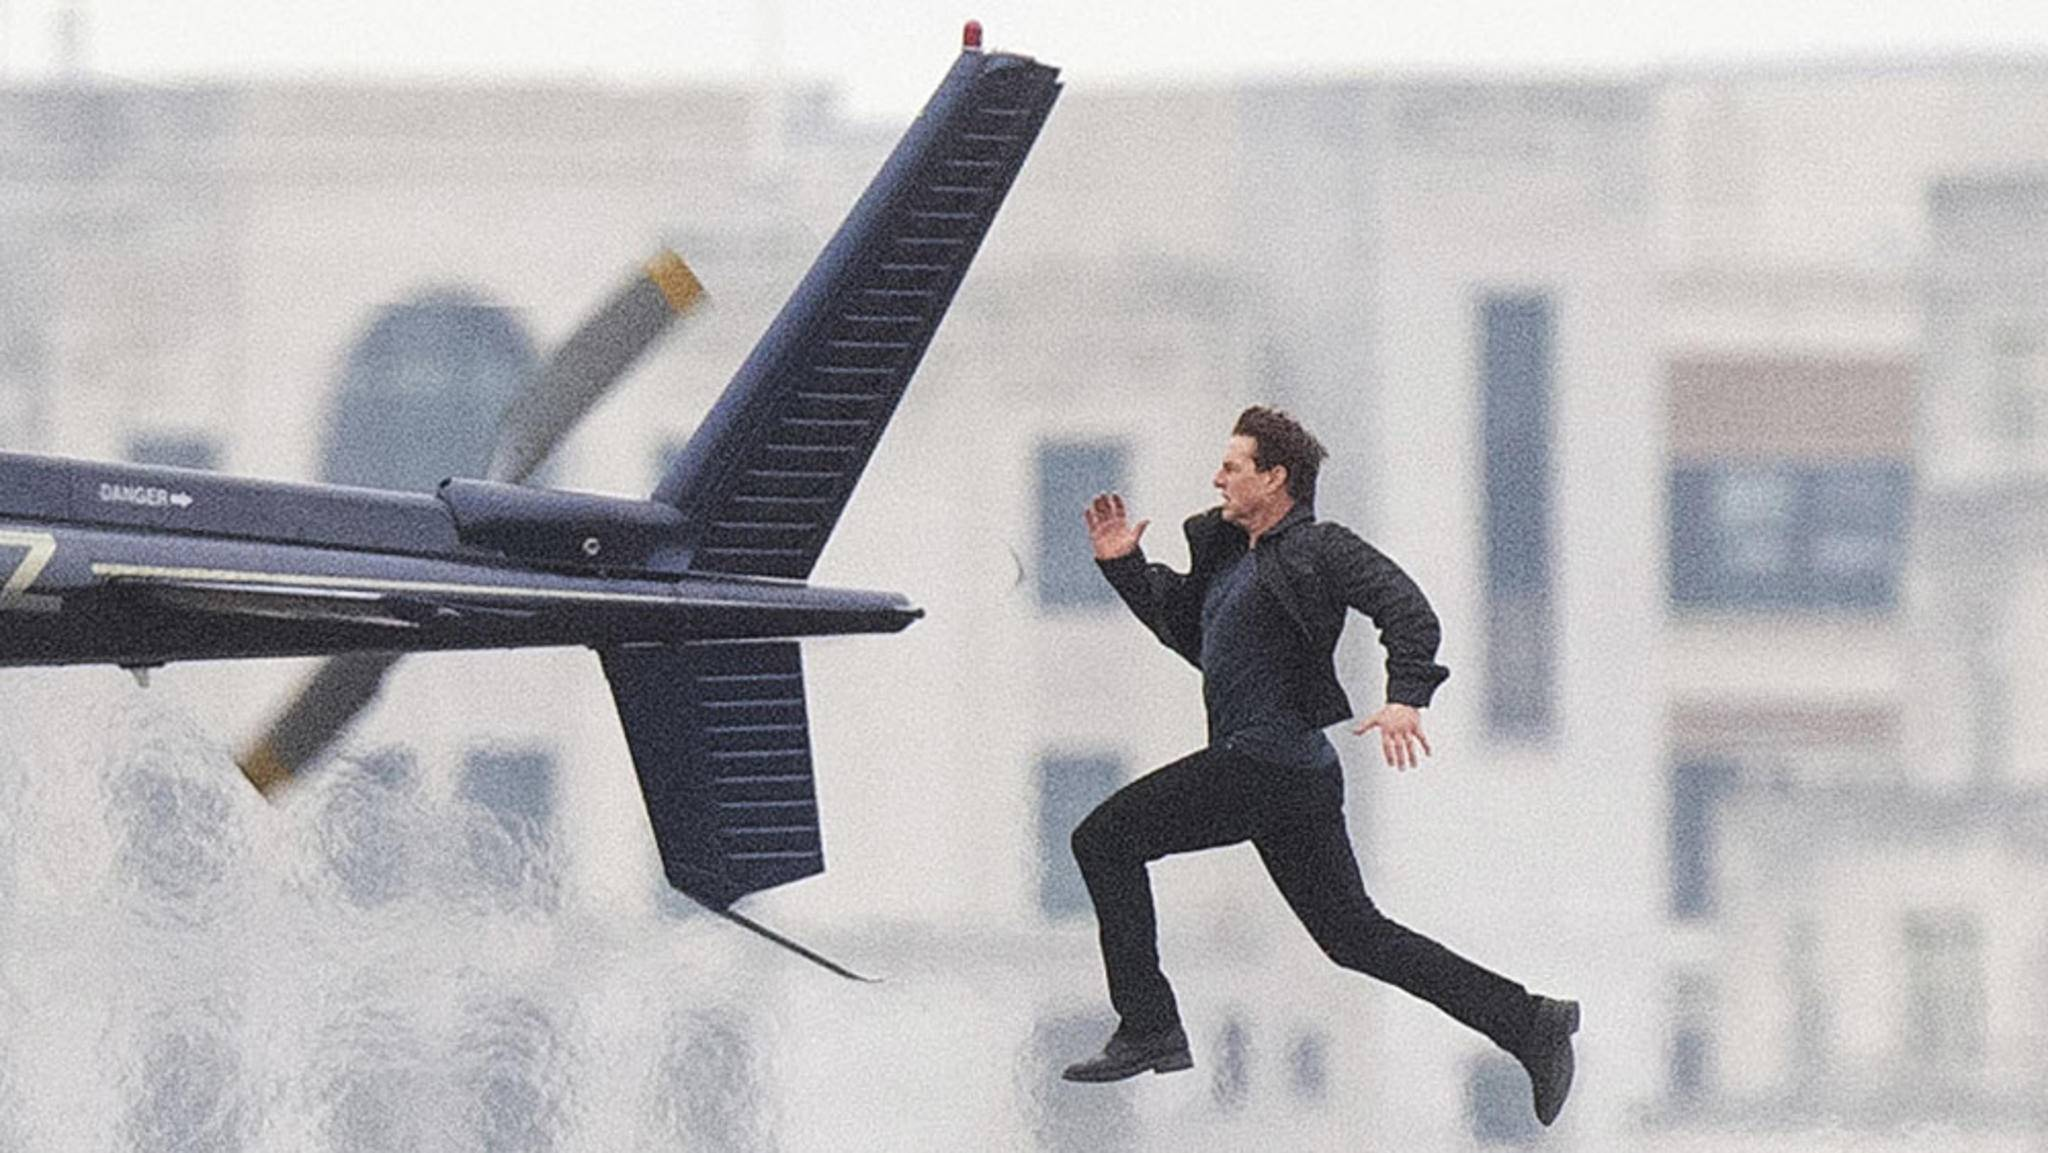 Tom Cruise Mission Impossible 6 Fallout